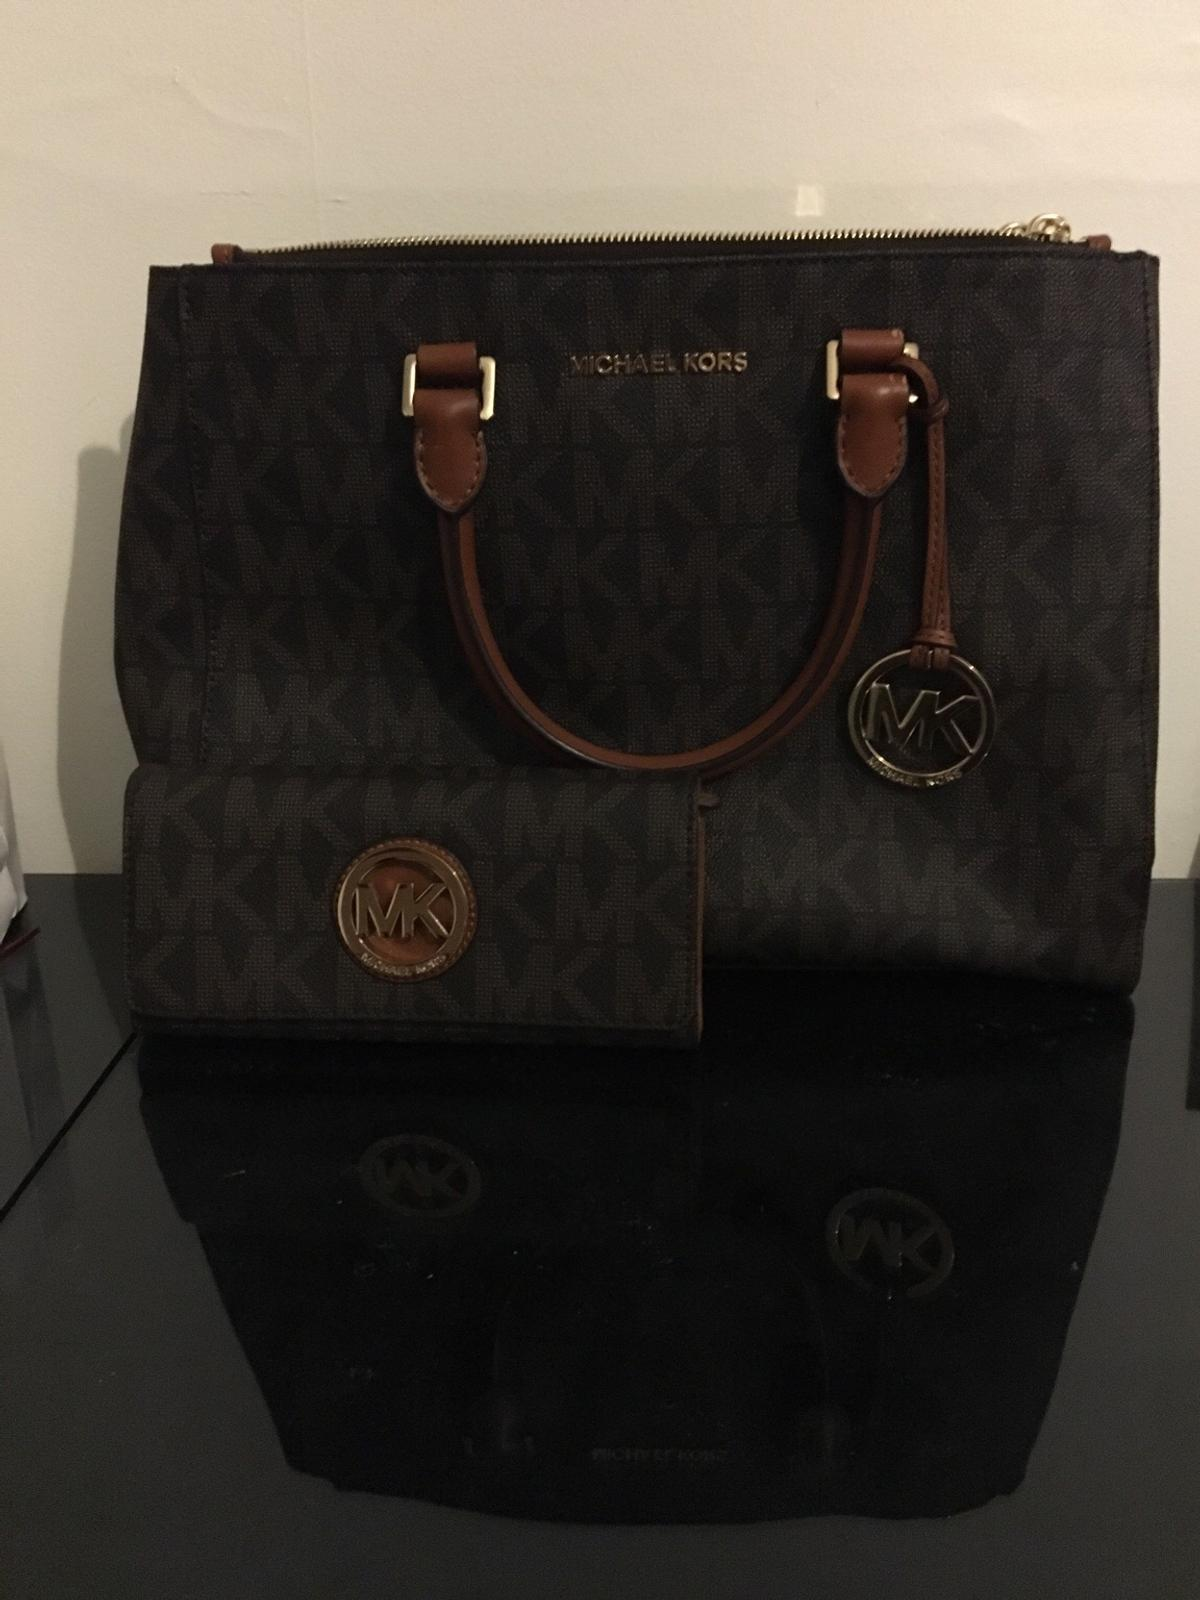 535083efc823 Description. Matching leather handbag and purse by Michael Kors selling ...